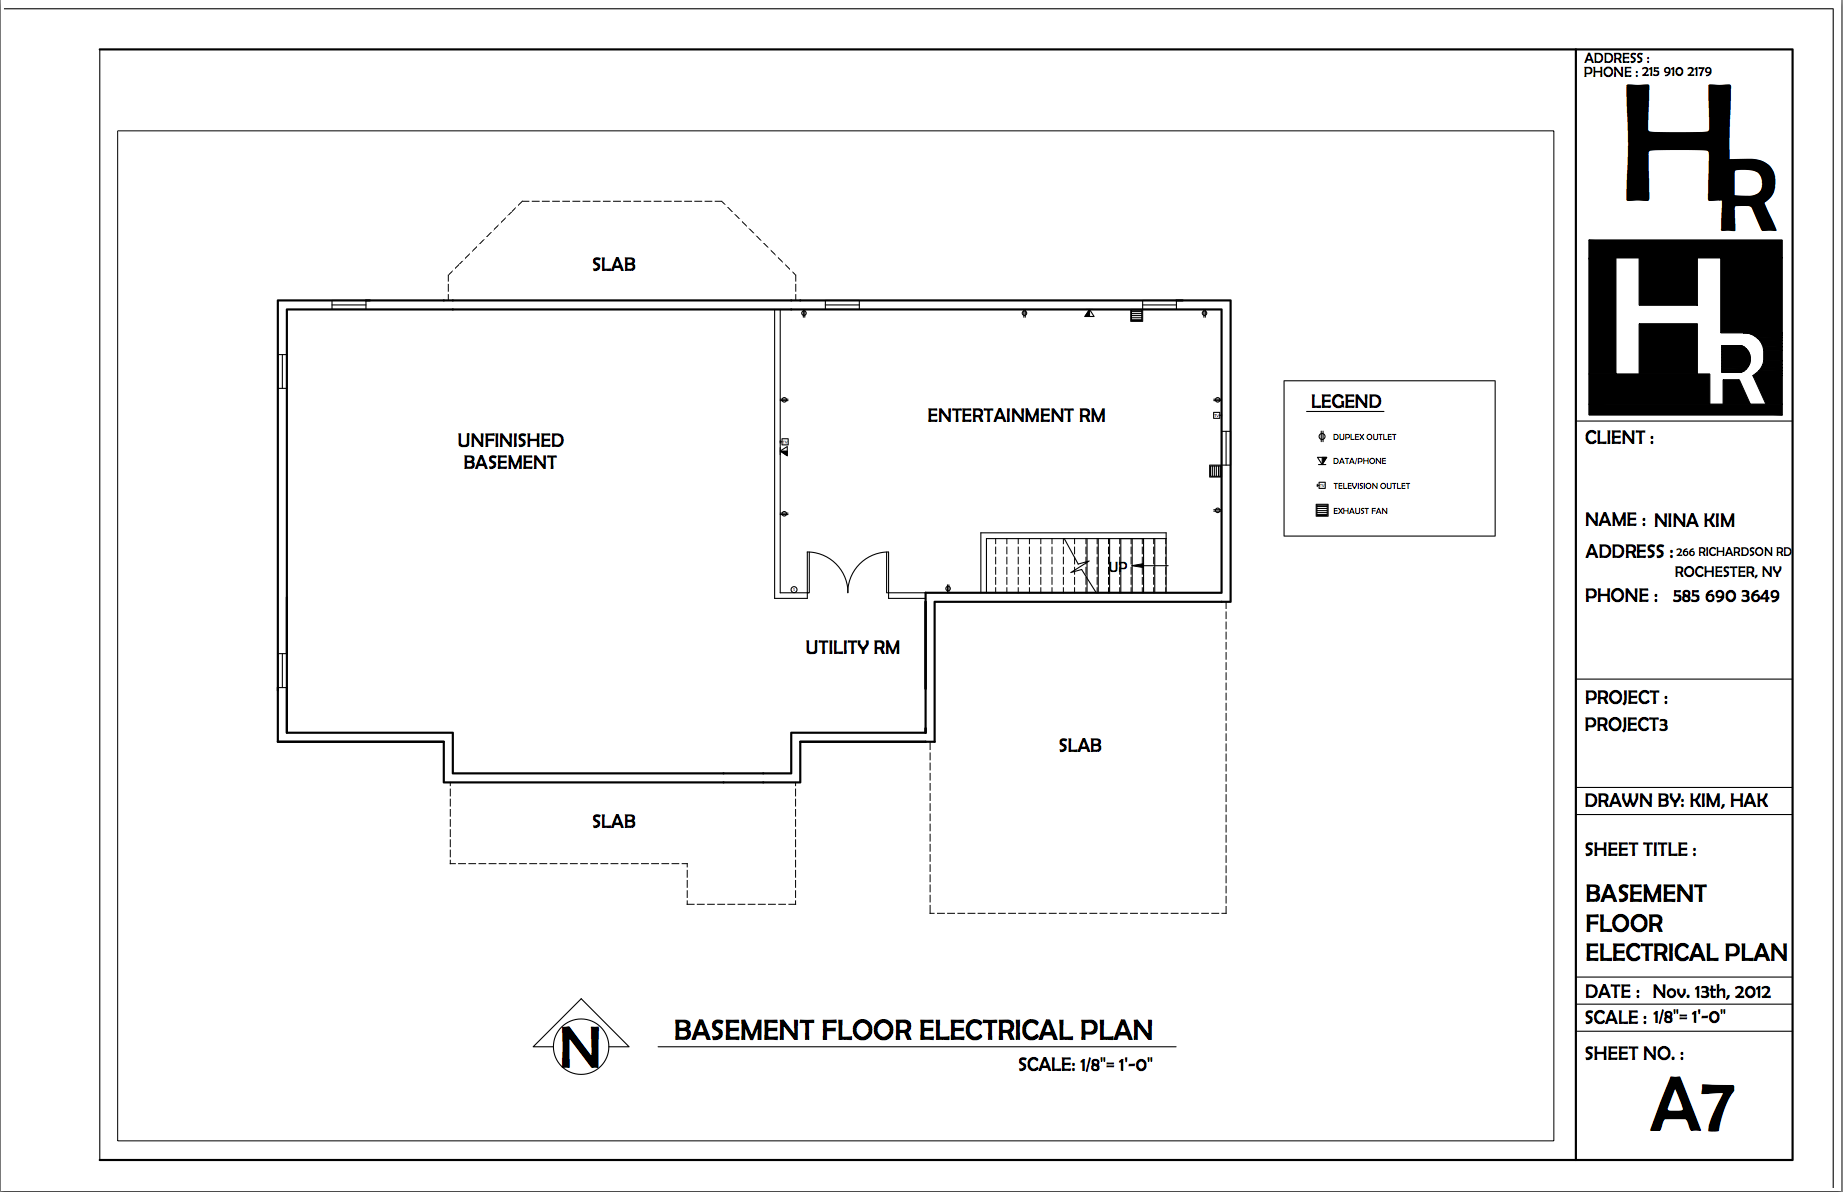 electrical plan for basement wiring diagram basement floor electrical plan portfolio autocad basementbasement floor electrical plan basement floor plans basement flooring